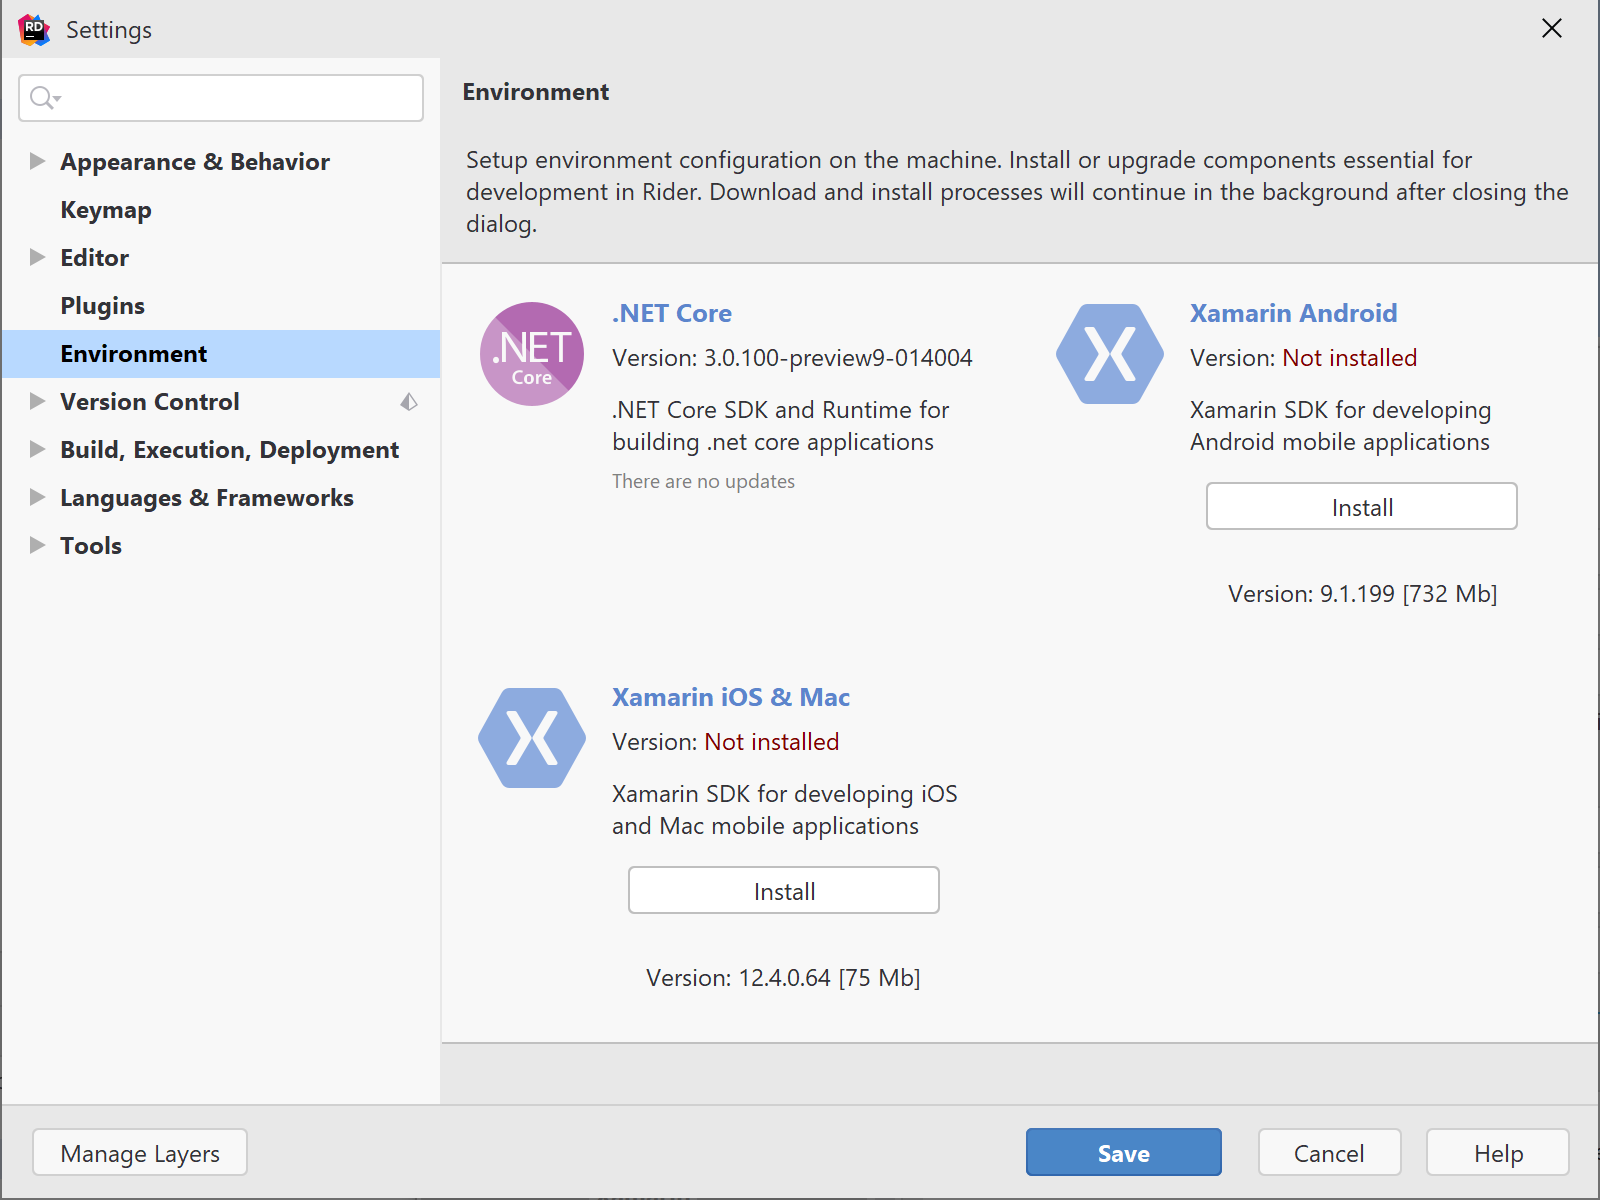 Xamarin SDK can be installed from within Rider